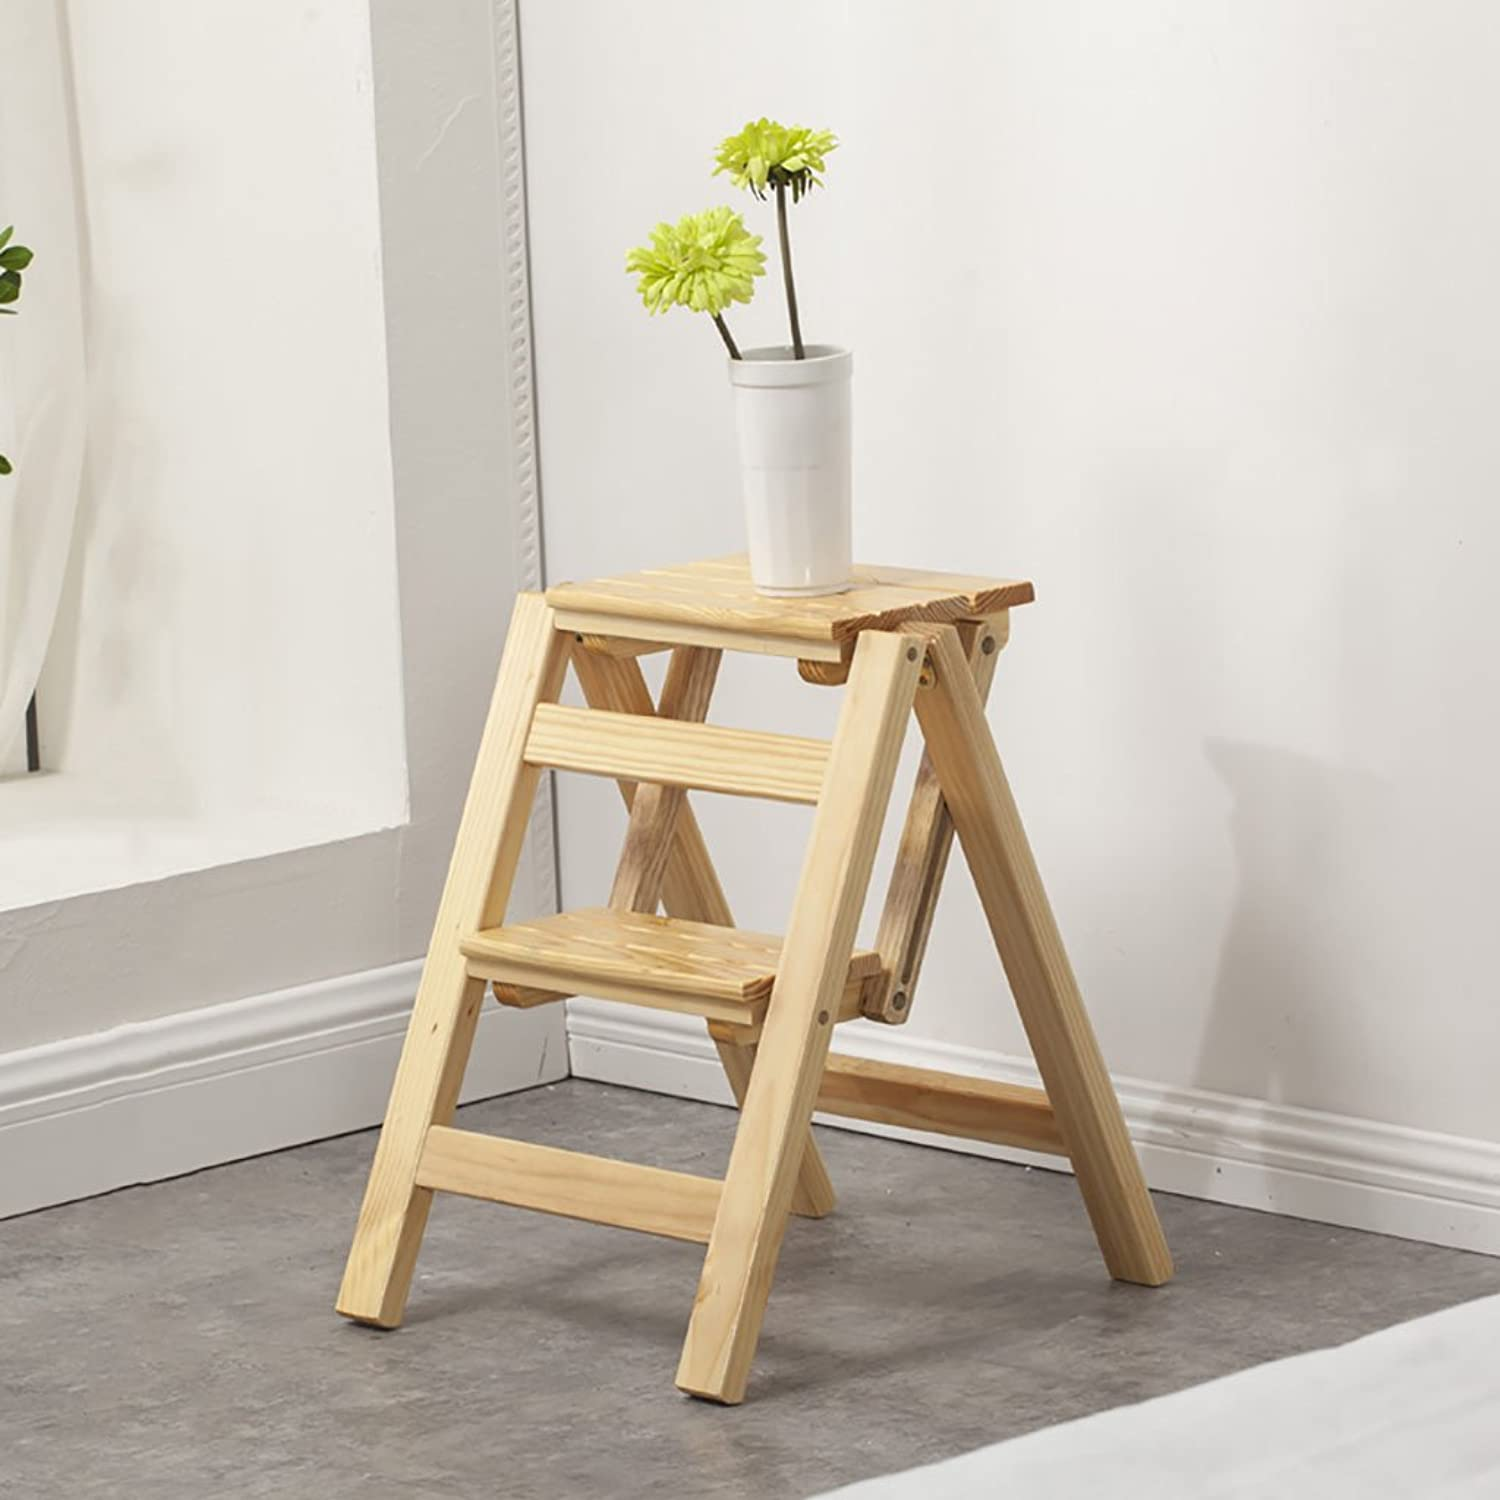 JINLINE Folding Step Stool Solid Wood 2 Step Ladder Stool Flower Shelf Home Multi-Function Indoor Small Ladder Step Stool (color   Wood color)